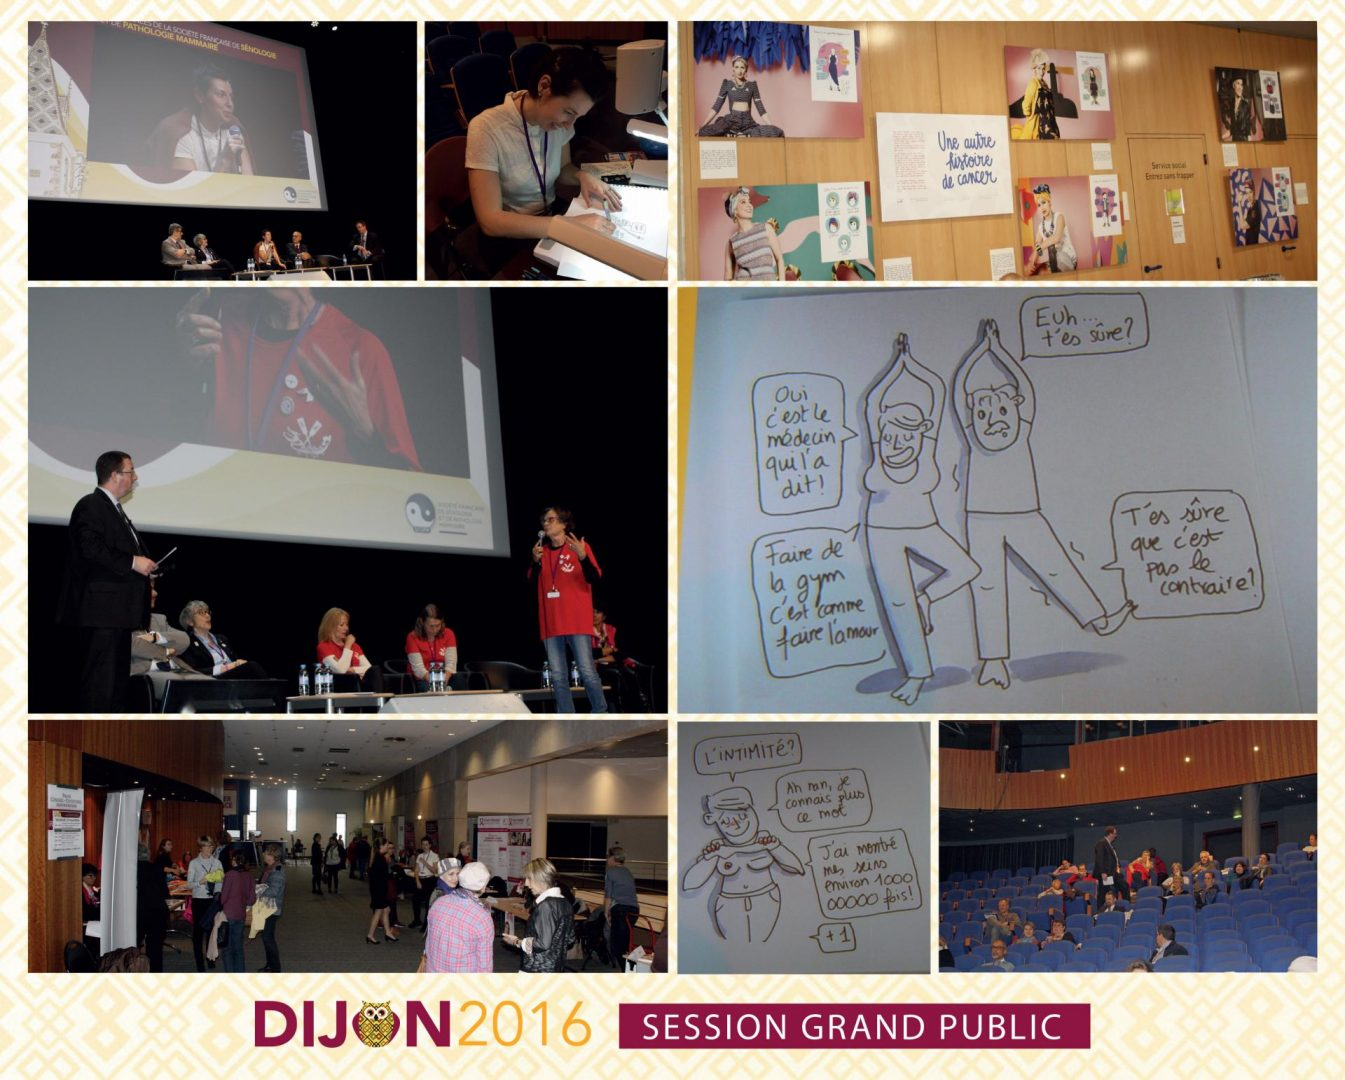 Session grand public congrès à Dijon